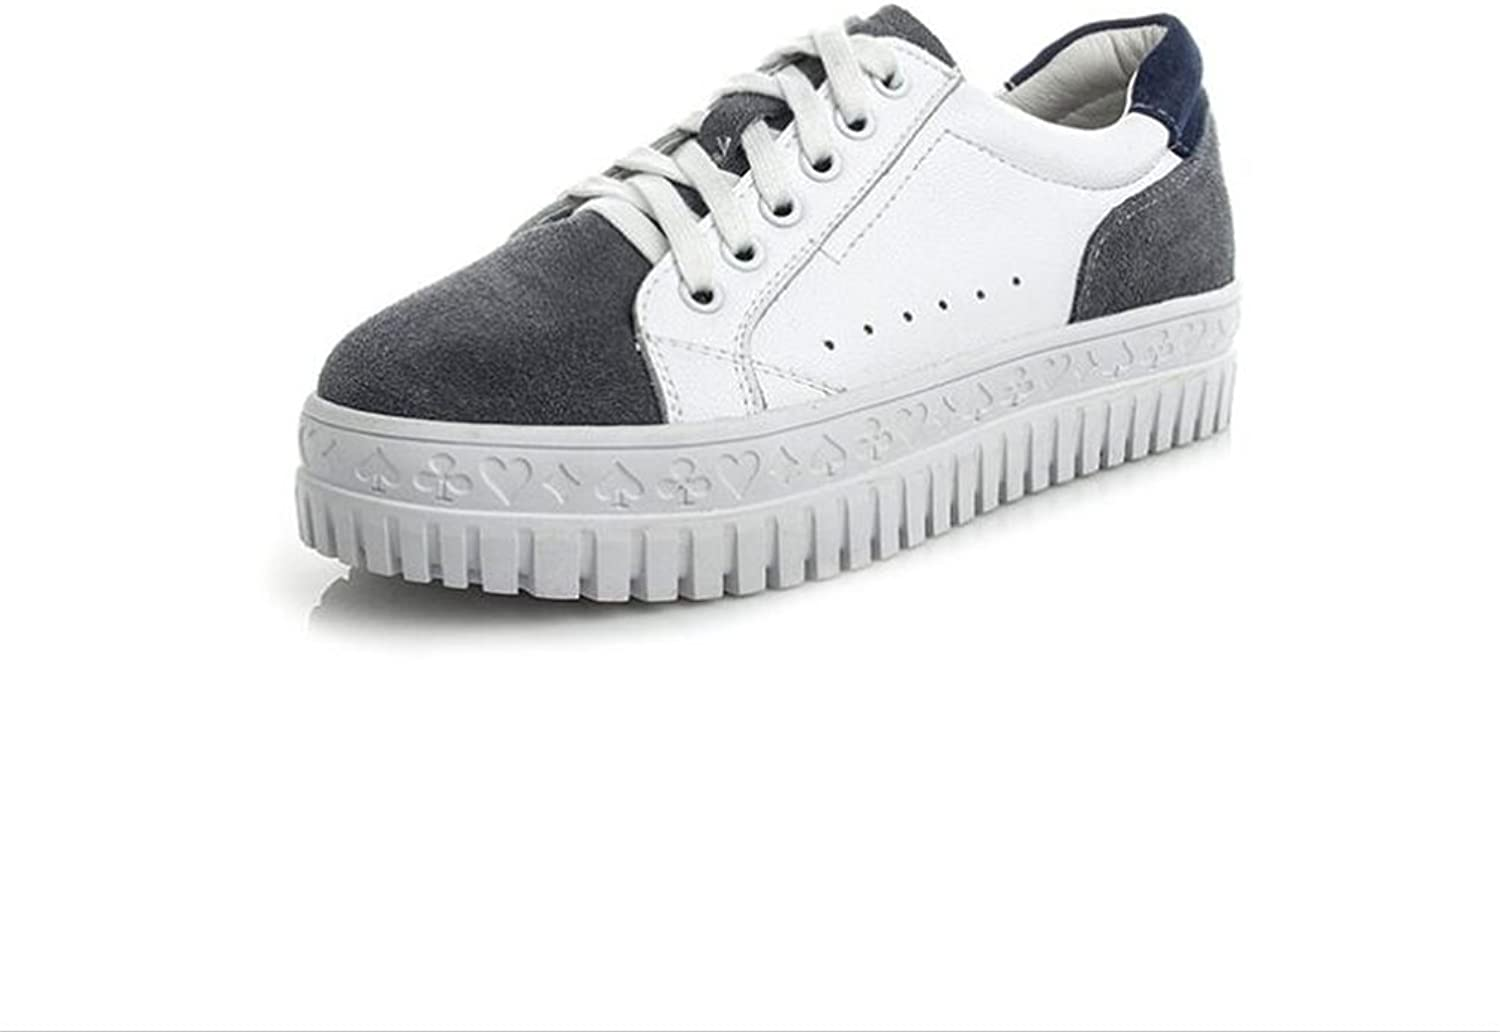 Exing Women's shoes Fall Winter New Leather Ladies shoes,Rounded Toe shoes Low-Top Breathable Deck shoes,Casual Lazy shoes